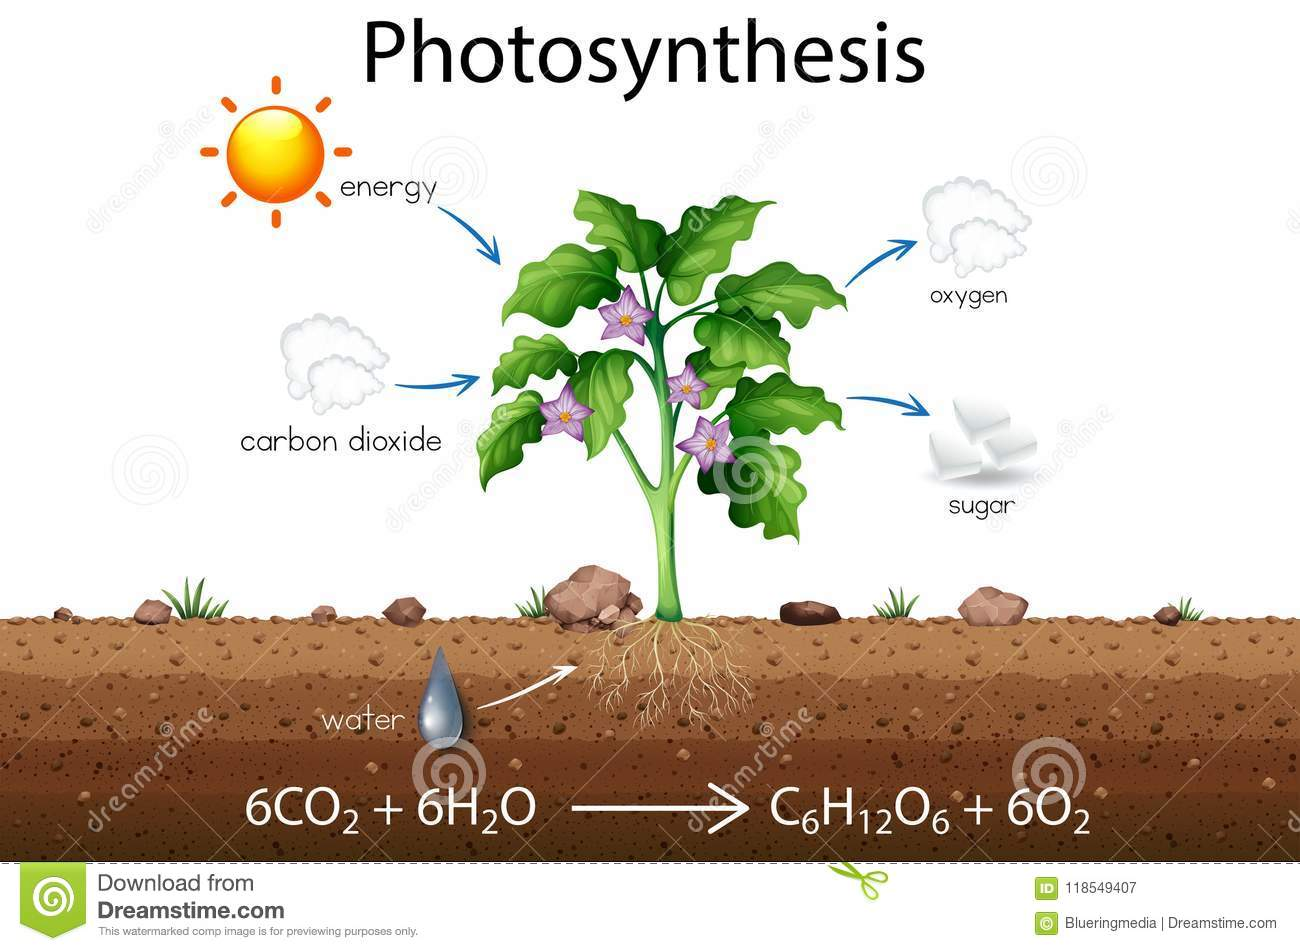 Photosynthesis explanation science diagram stock vector download photosynthesis explanation science diagram stock vector illustration of arrows ground 118549407 ccuart Gallery